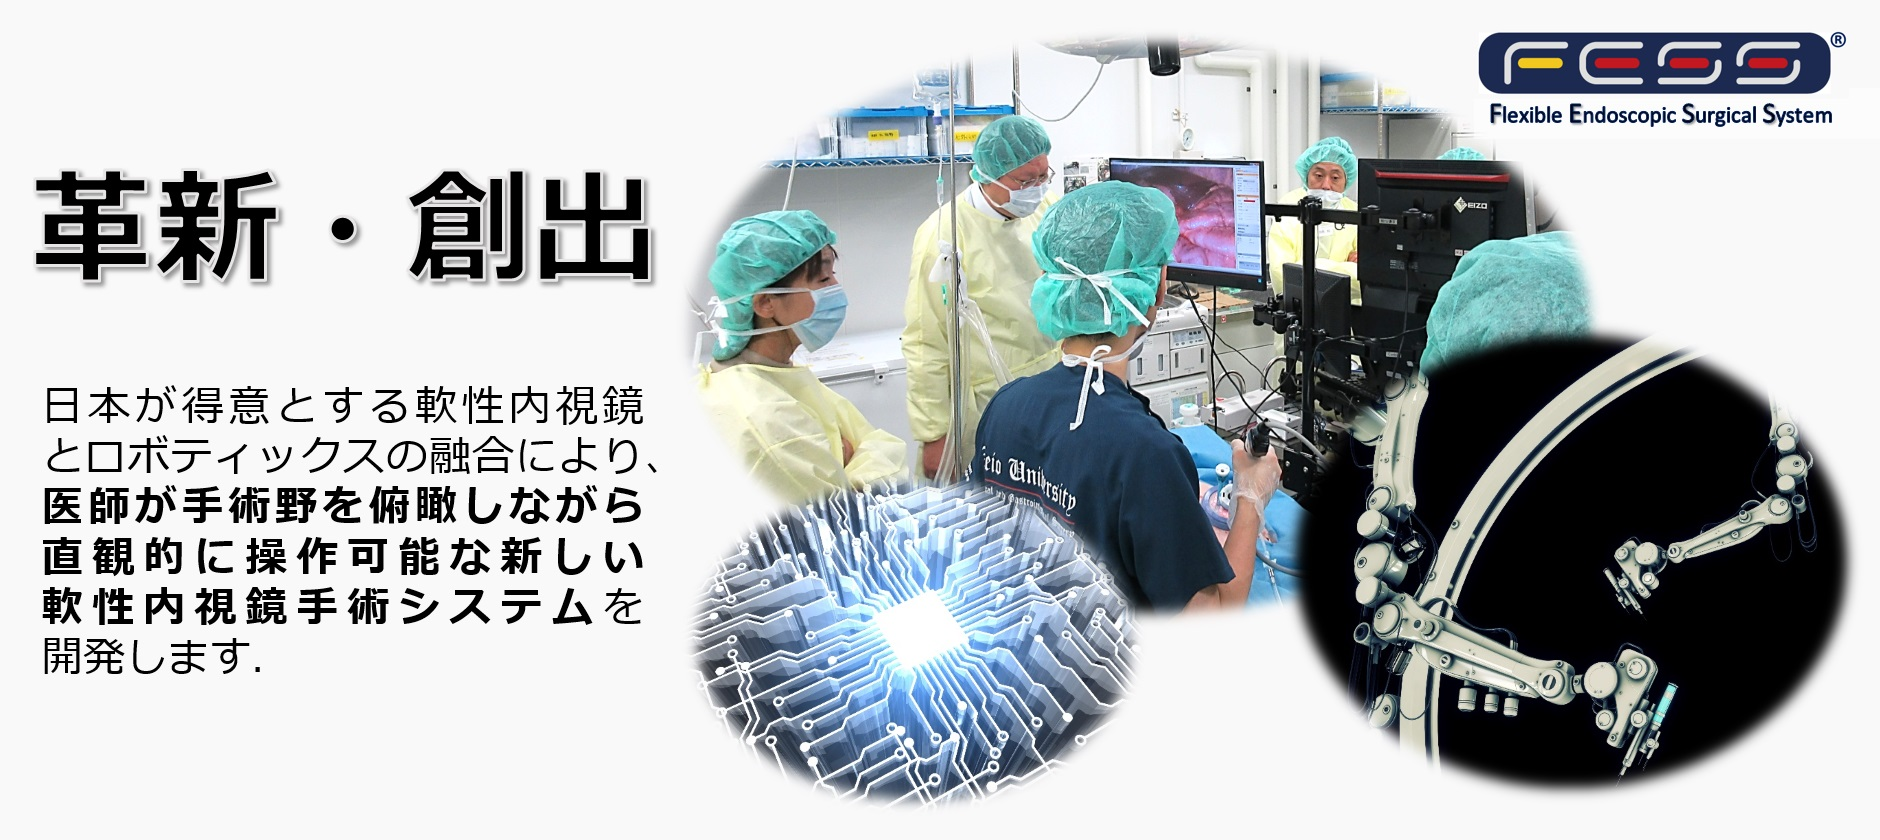 「Flexible Endoscopic Surgical System;FESS」トップ